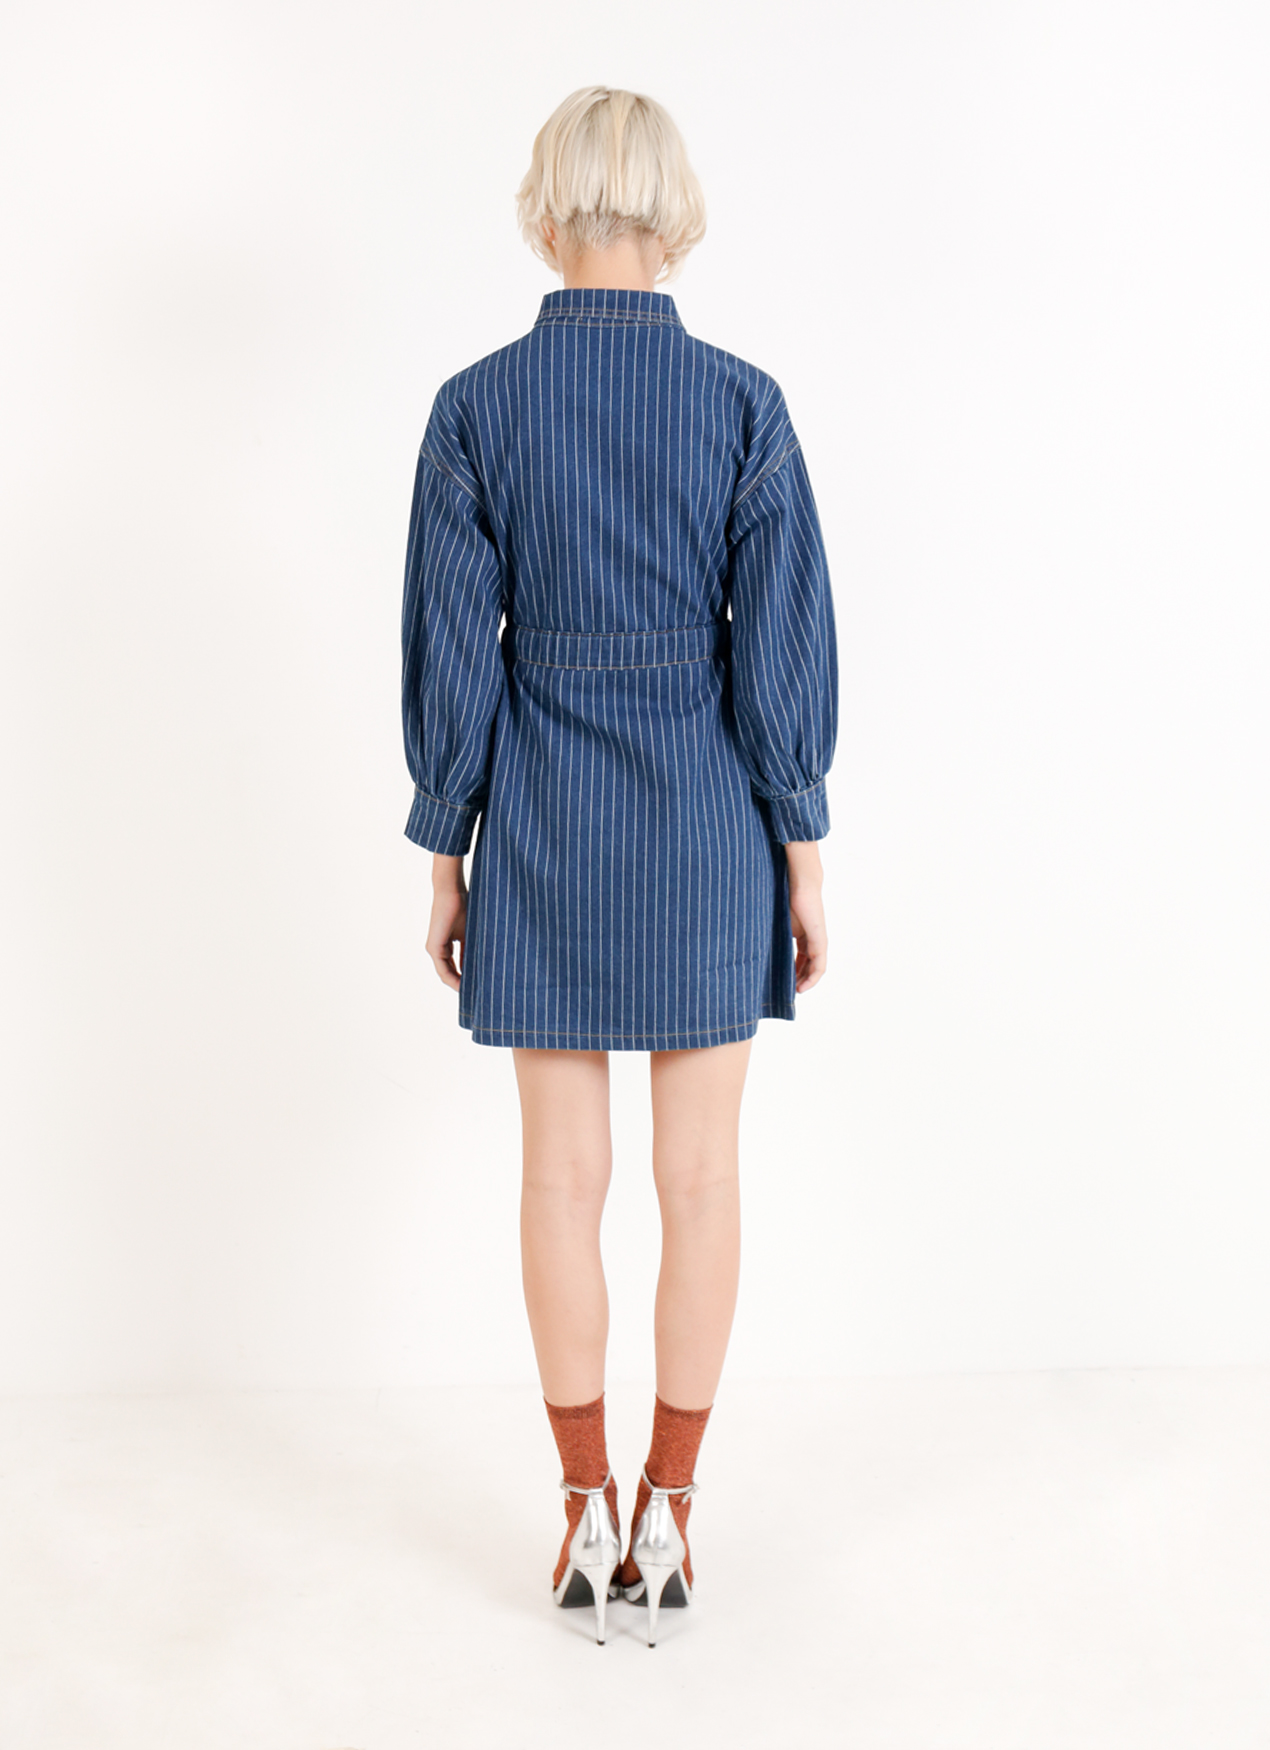 BOWN Dorota Dress - Deep blue